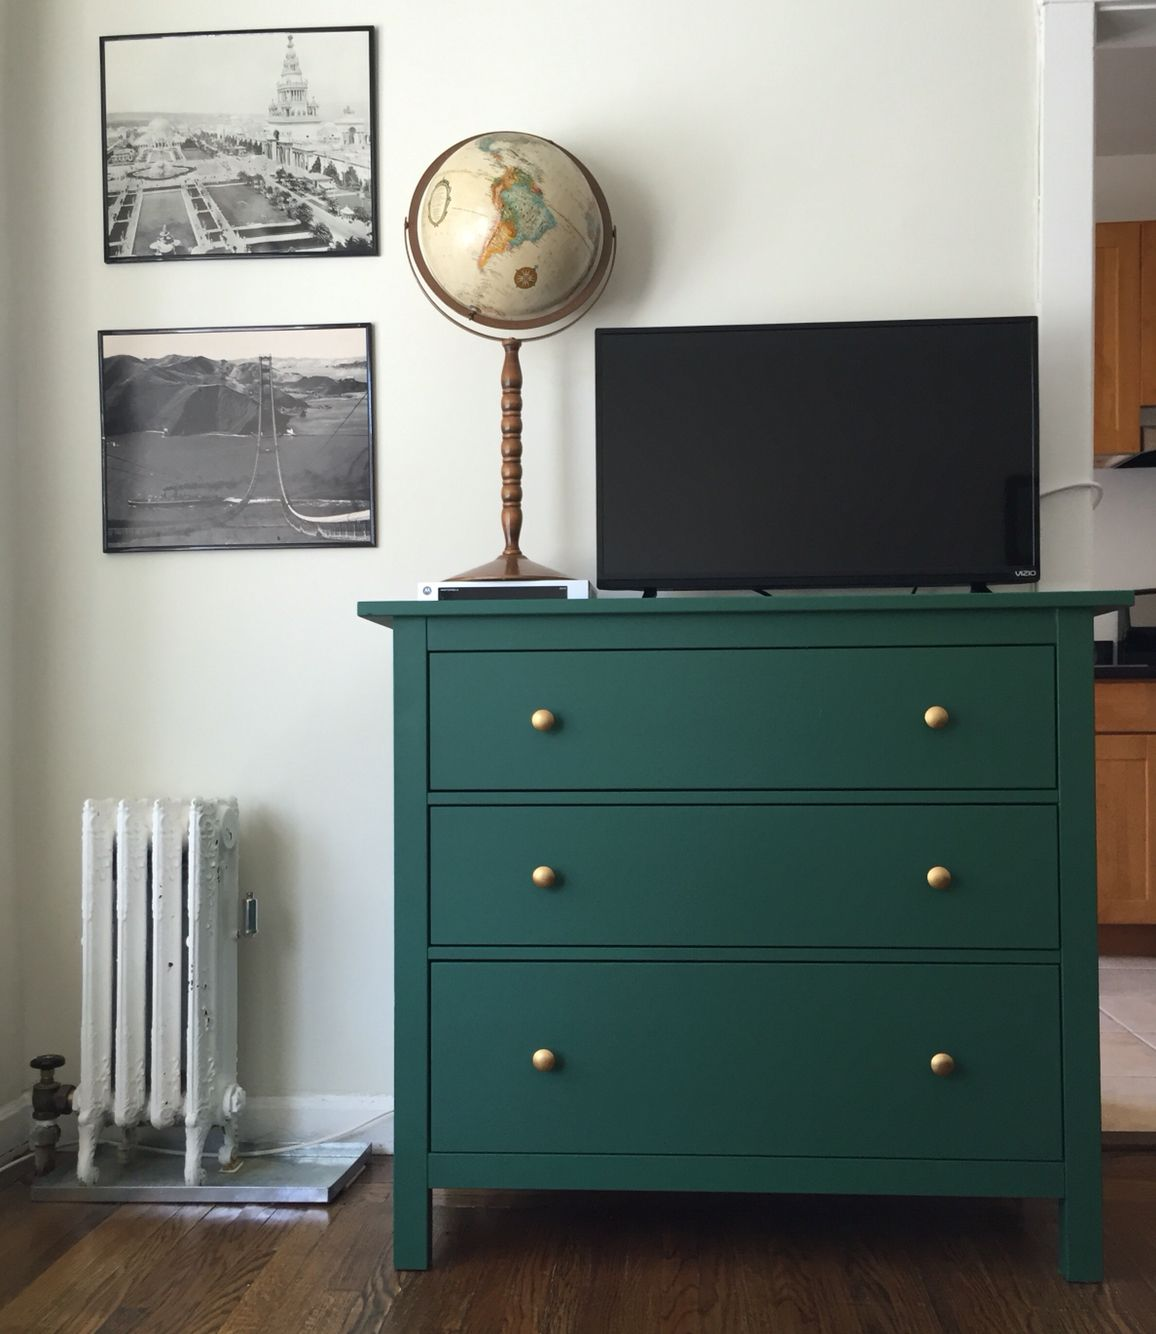 ikea hemnes dresser hack chalkboard green home pinterest hemnes chalkboards and dresser. Black Bedroom Furniture Sets. Home Design Ideas